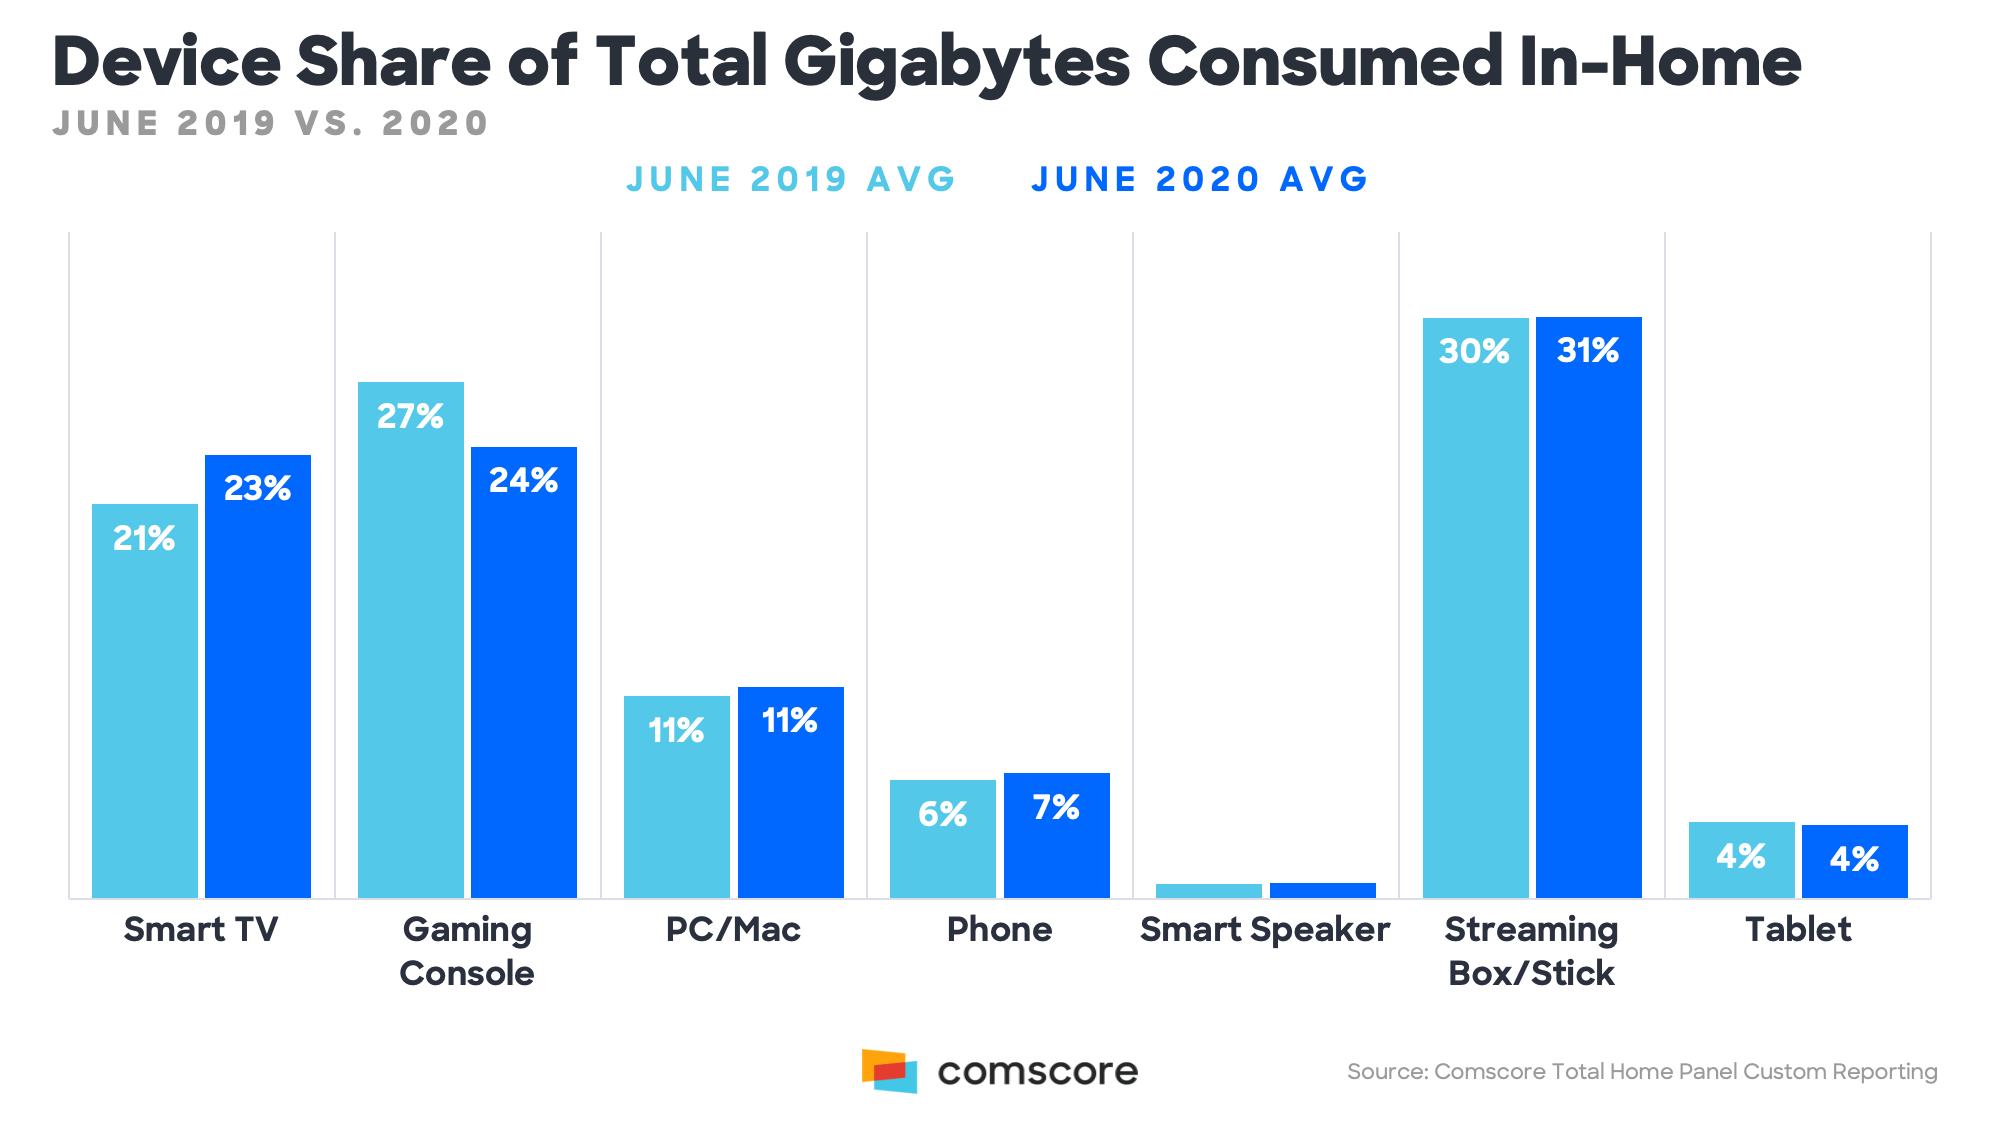 Device Share of Total Gigabytes Consumed in Home